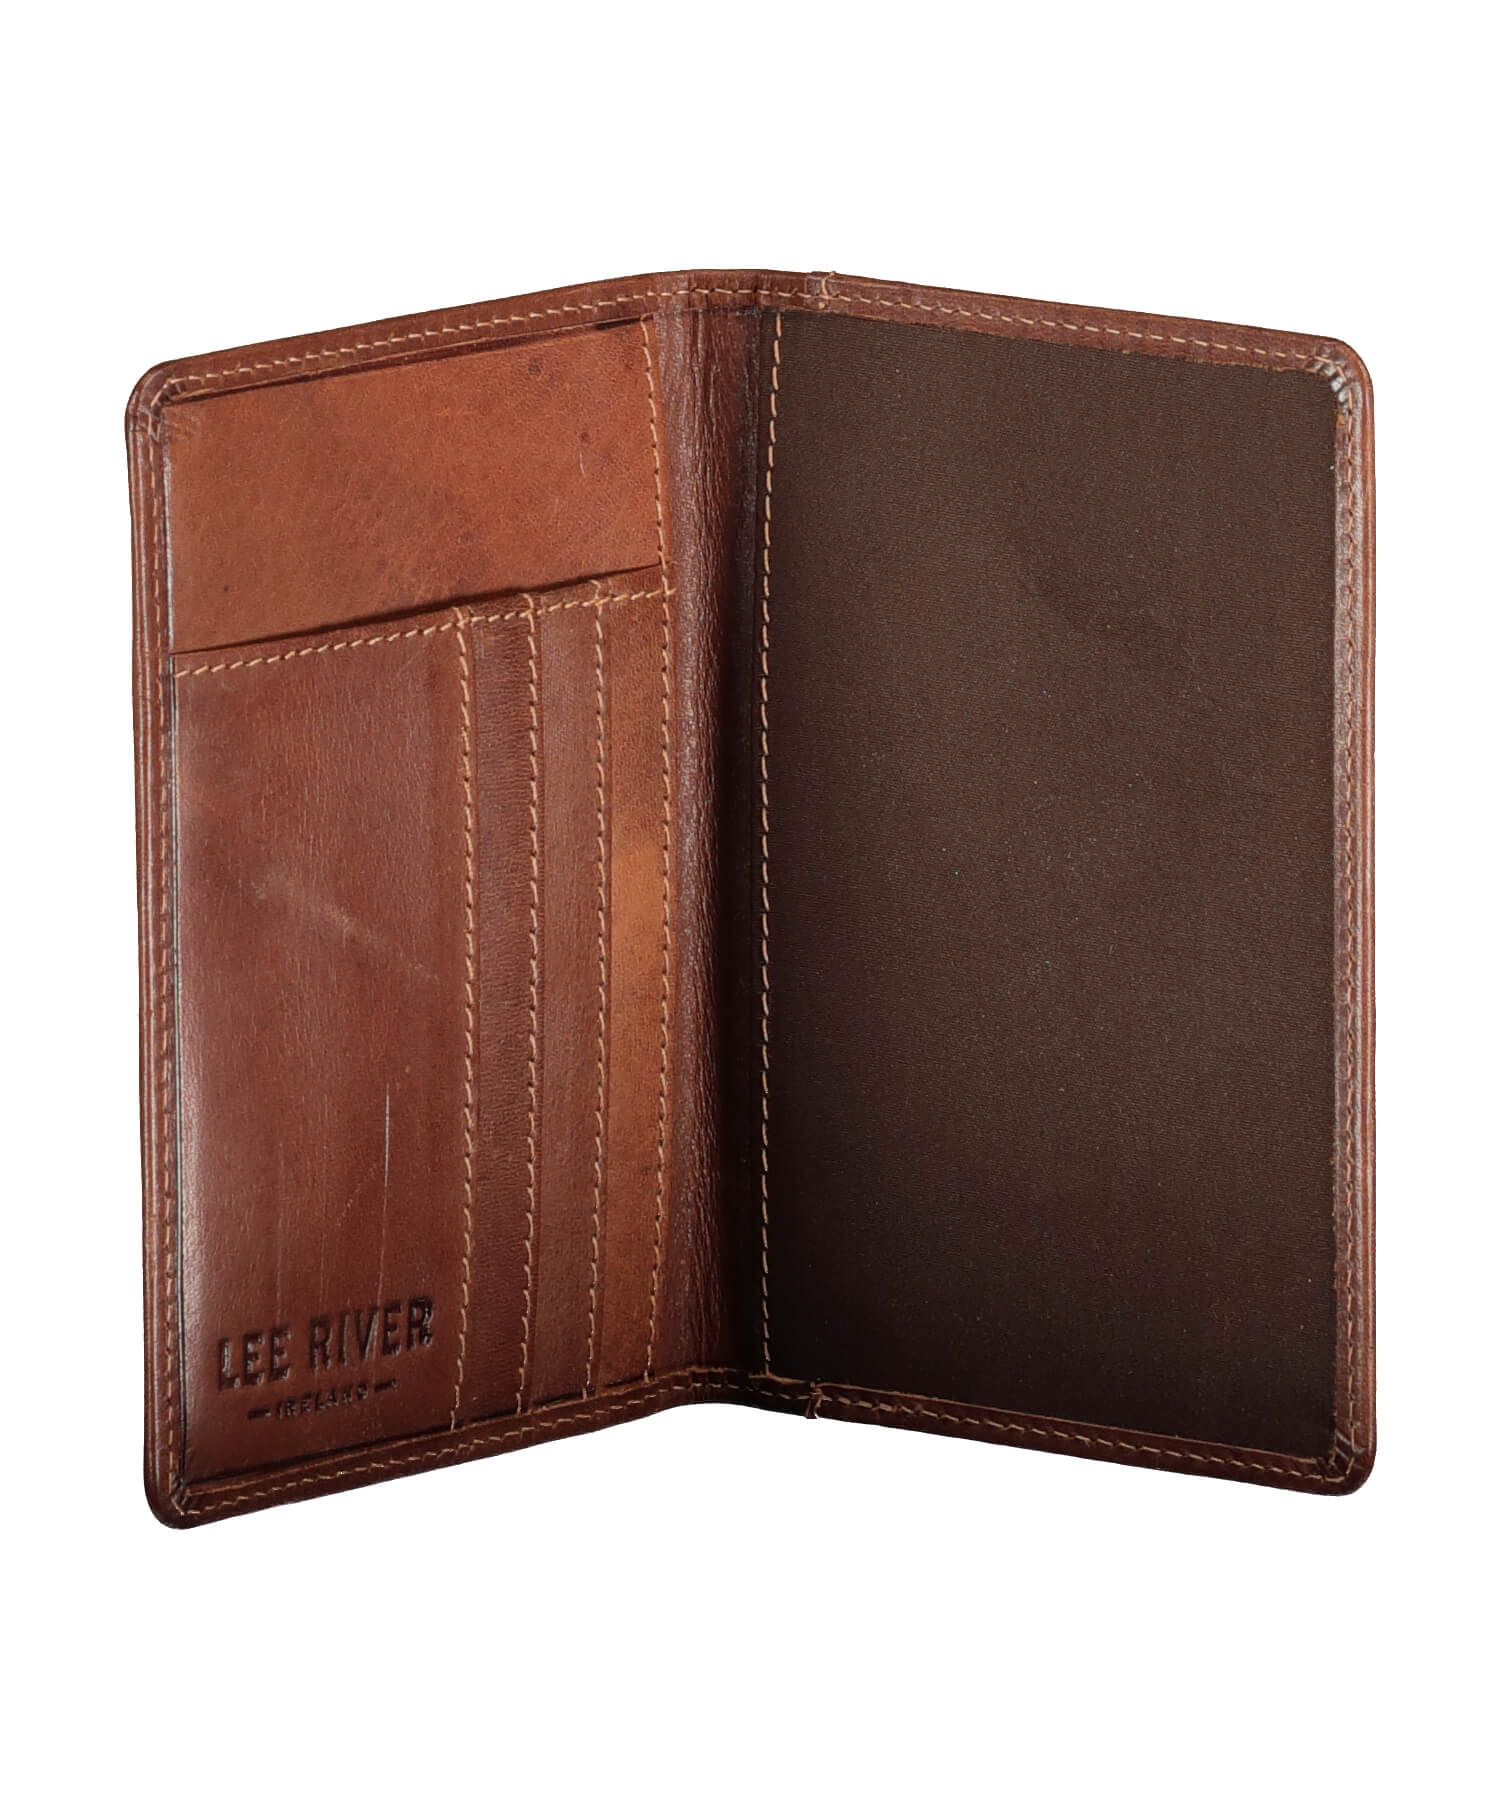 Passport Cover - Tan - [Lee River] - Bags, Purses & Wallets - Irish Gifts